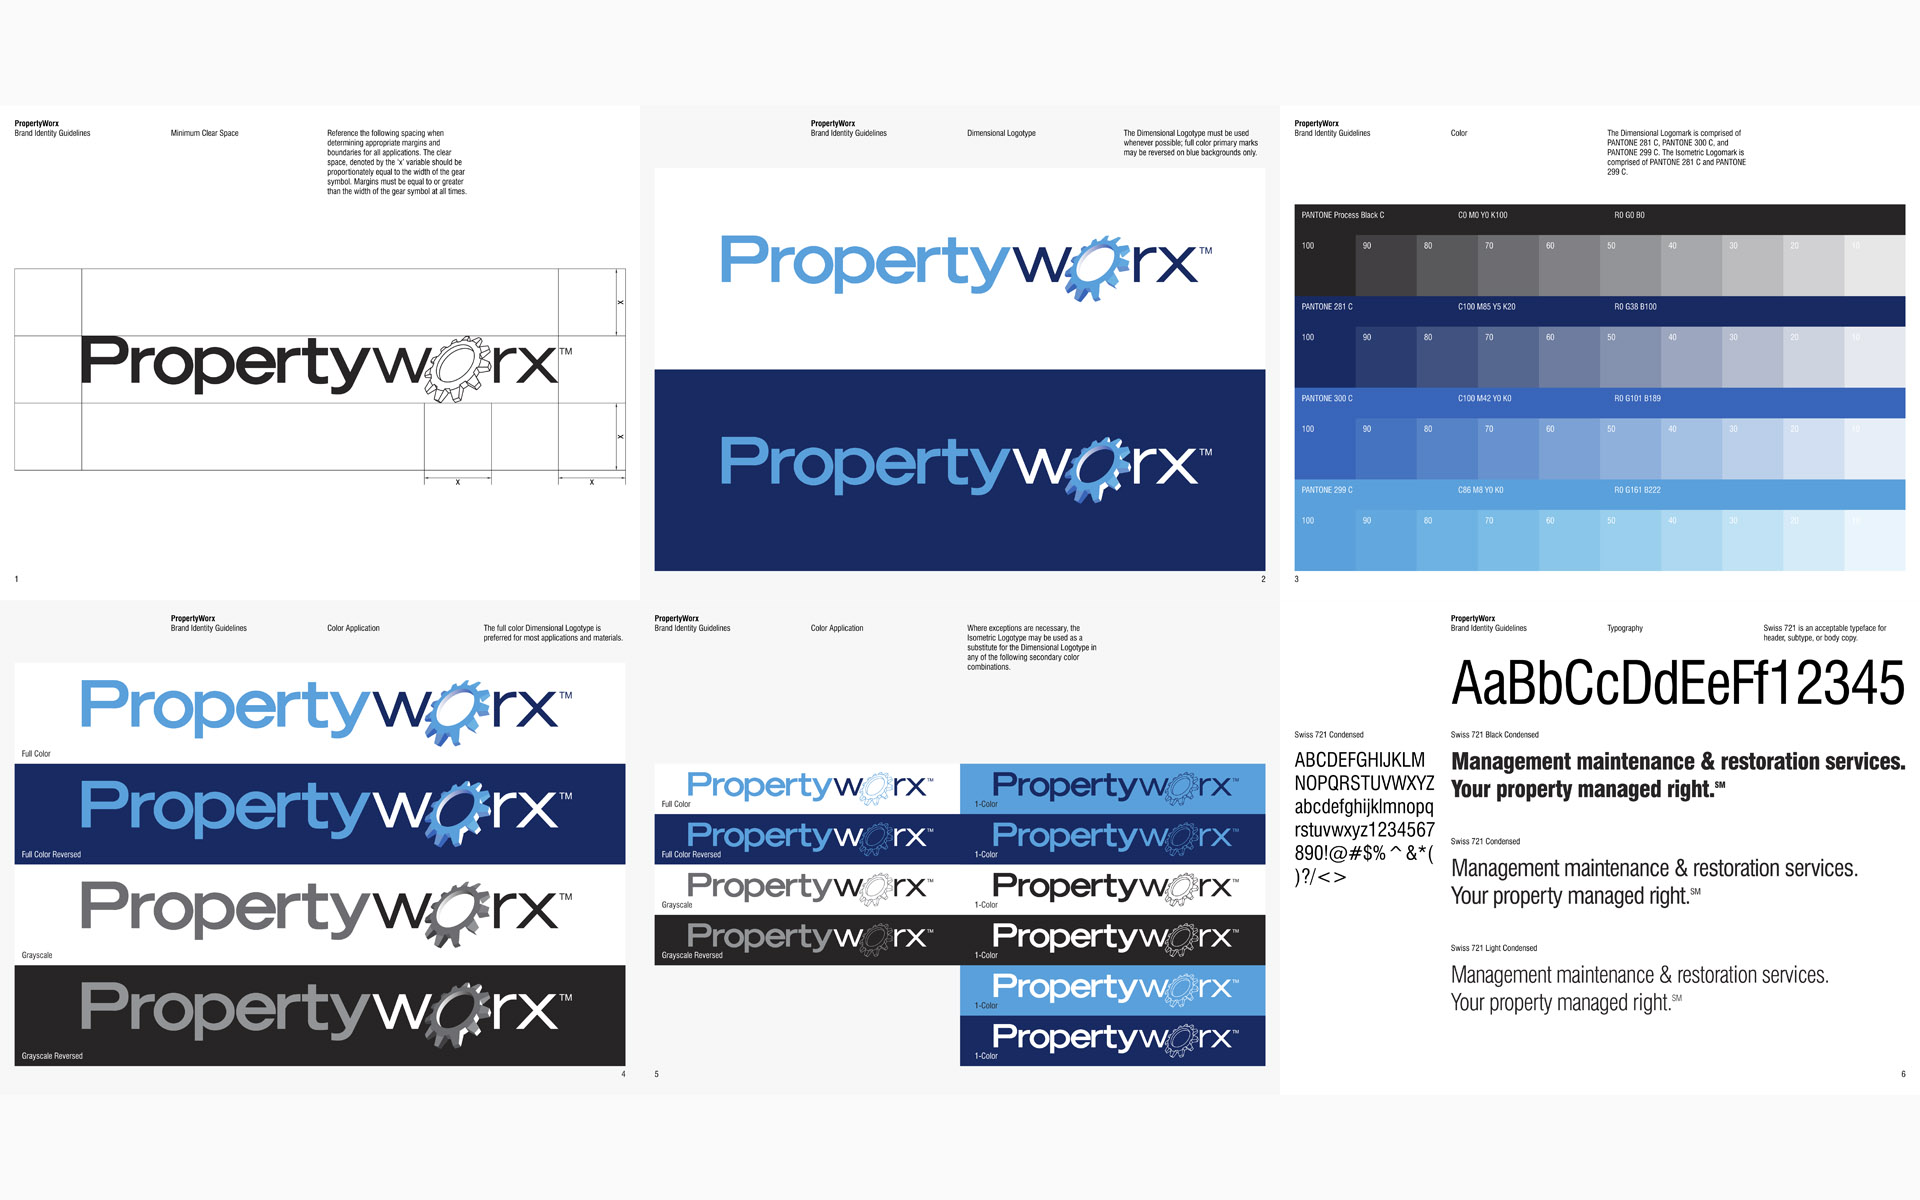 Propertyworx Brand Identity Style Guidelines